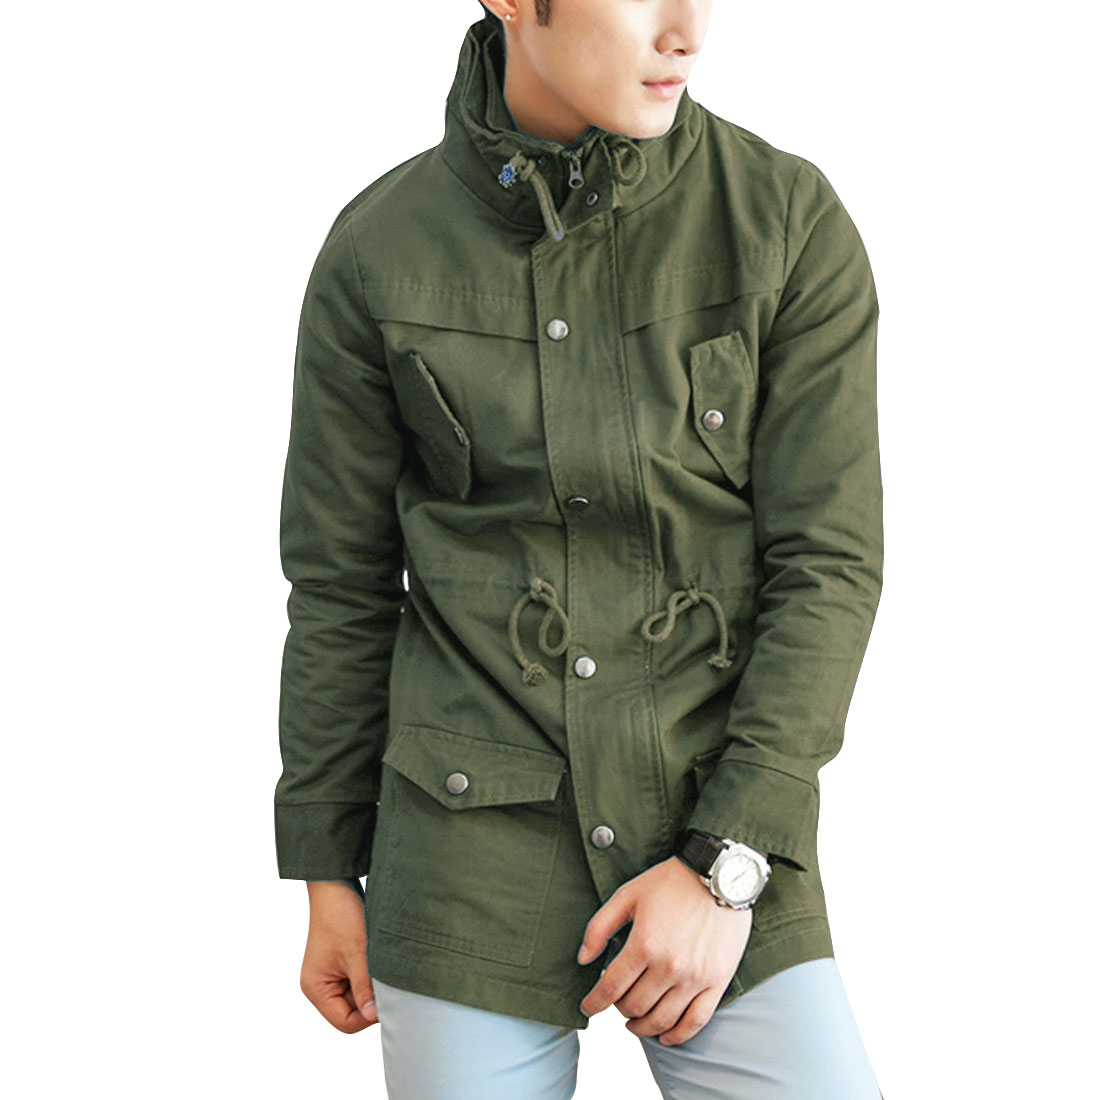 Chic Drawstring Waist Zip-Up Closure Army Green Trench Coat for Man M